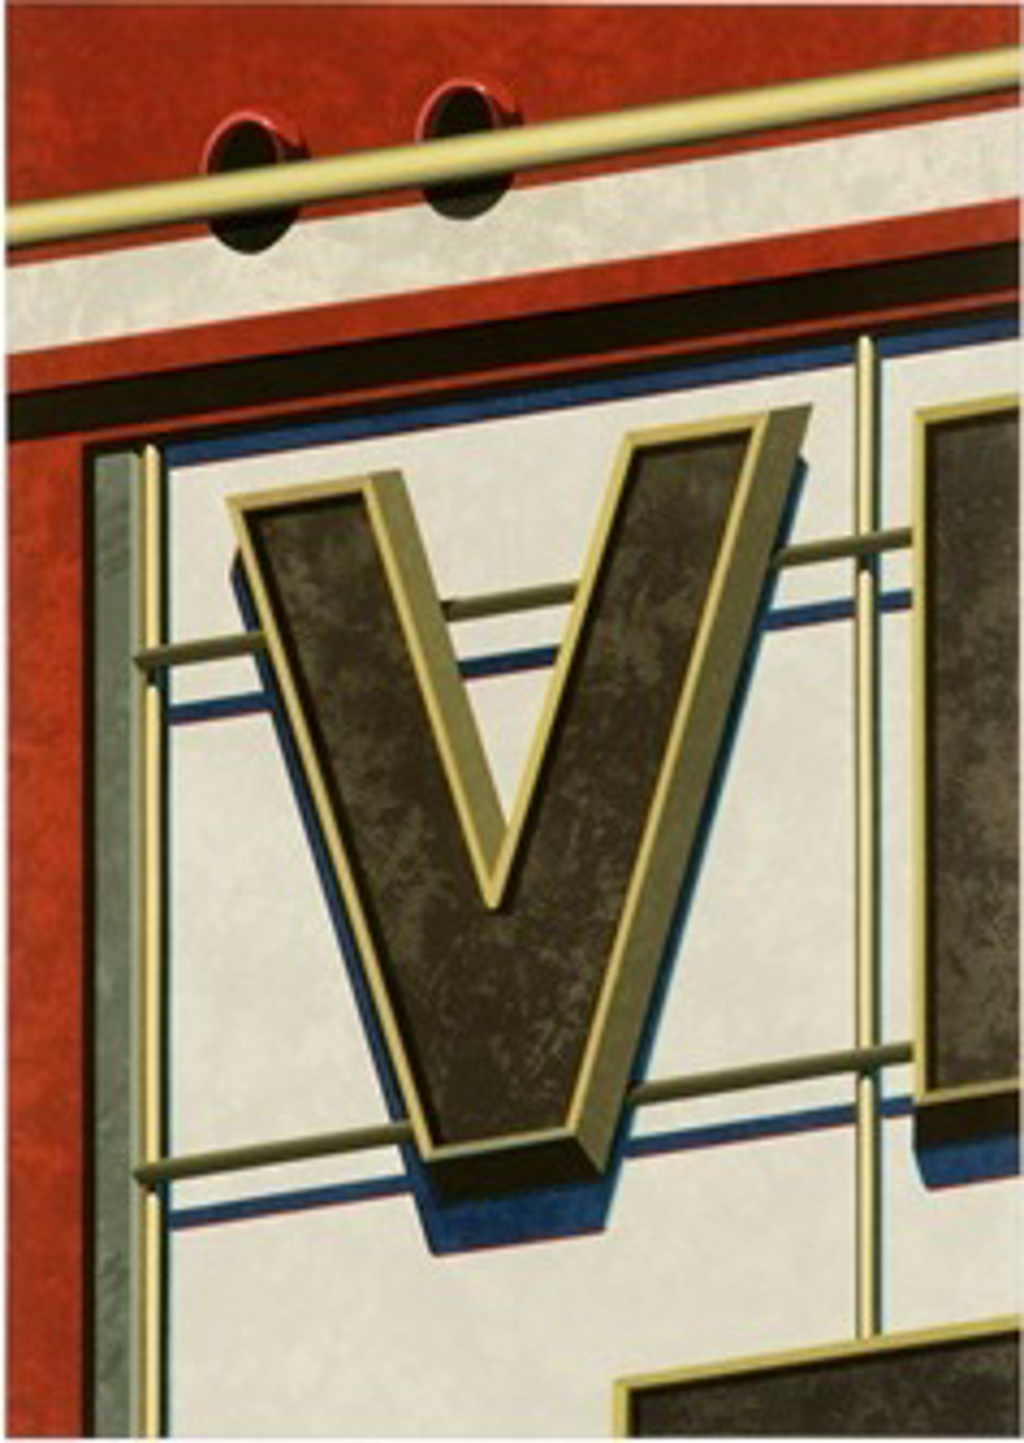 An American Alphabet: V by Robert Cottingham